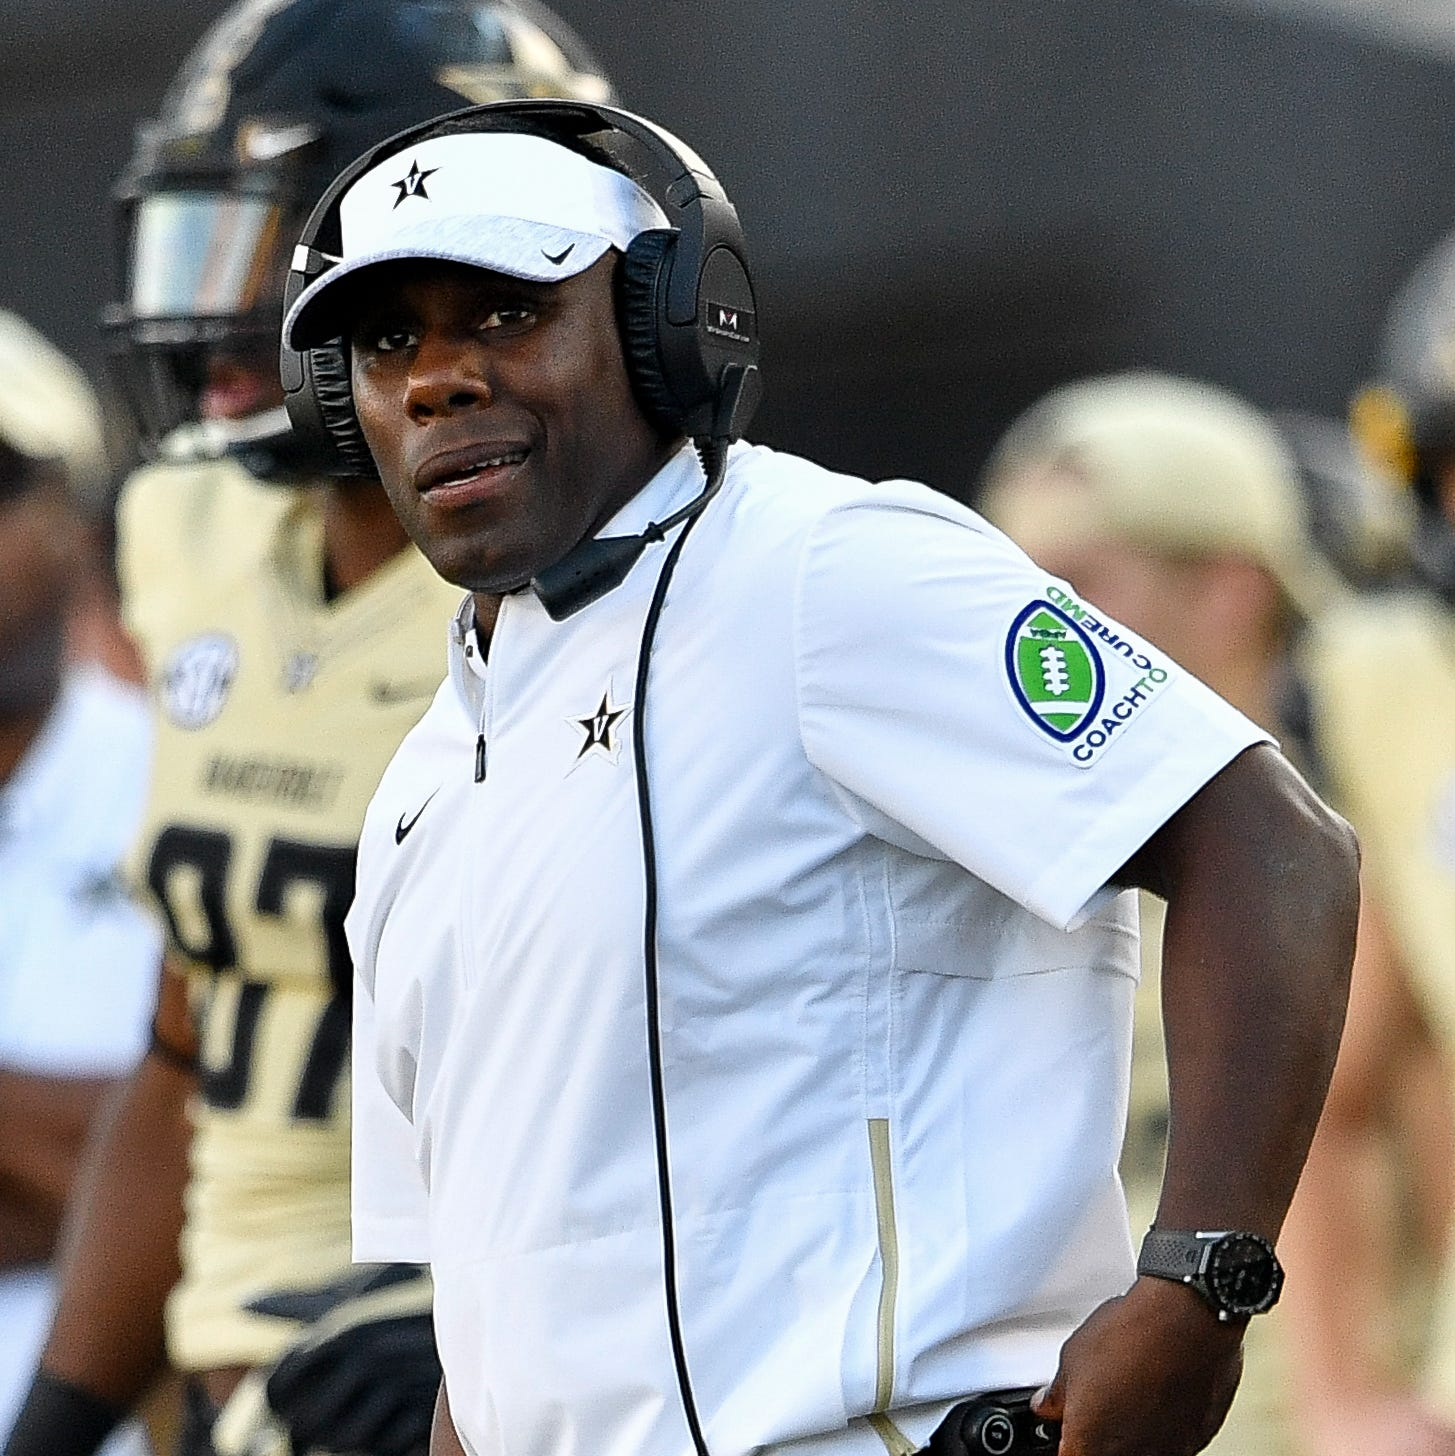 Vanderbilt signing day: Derek Mason pinned past, future on 3-star recruits